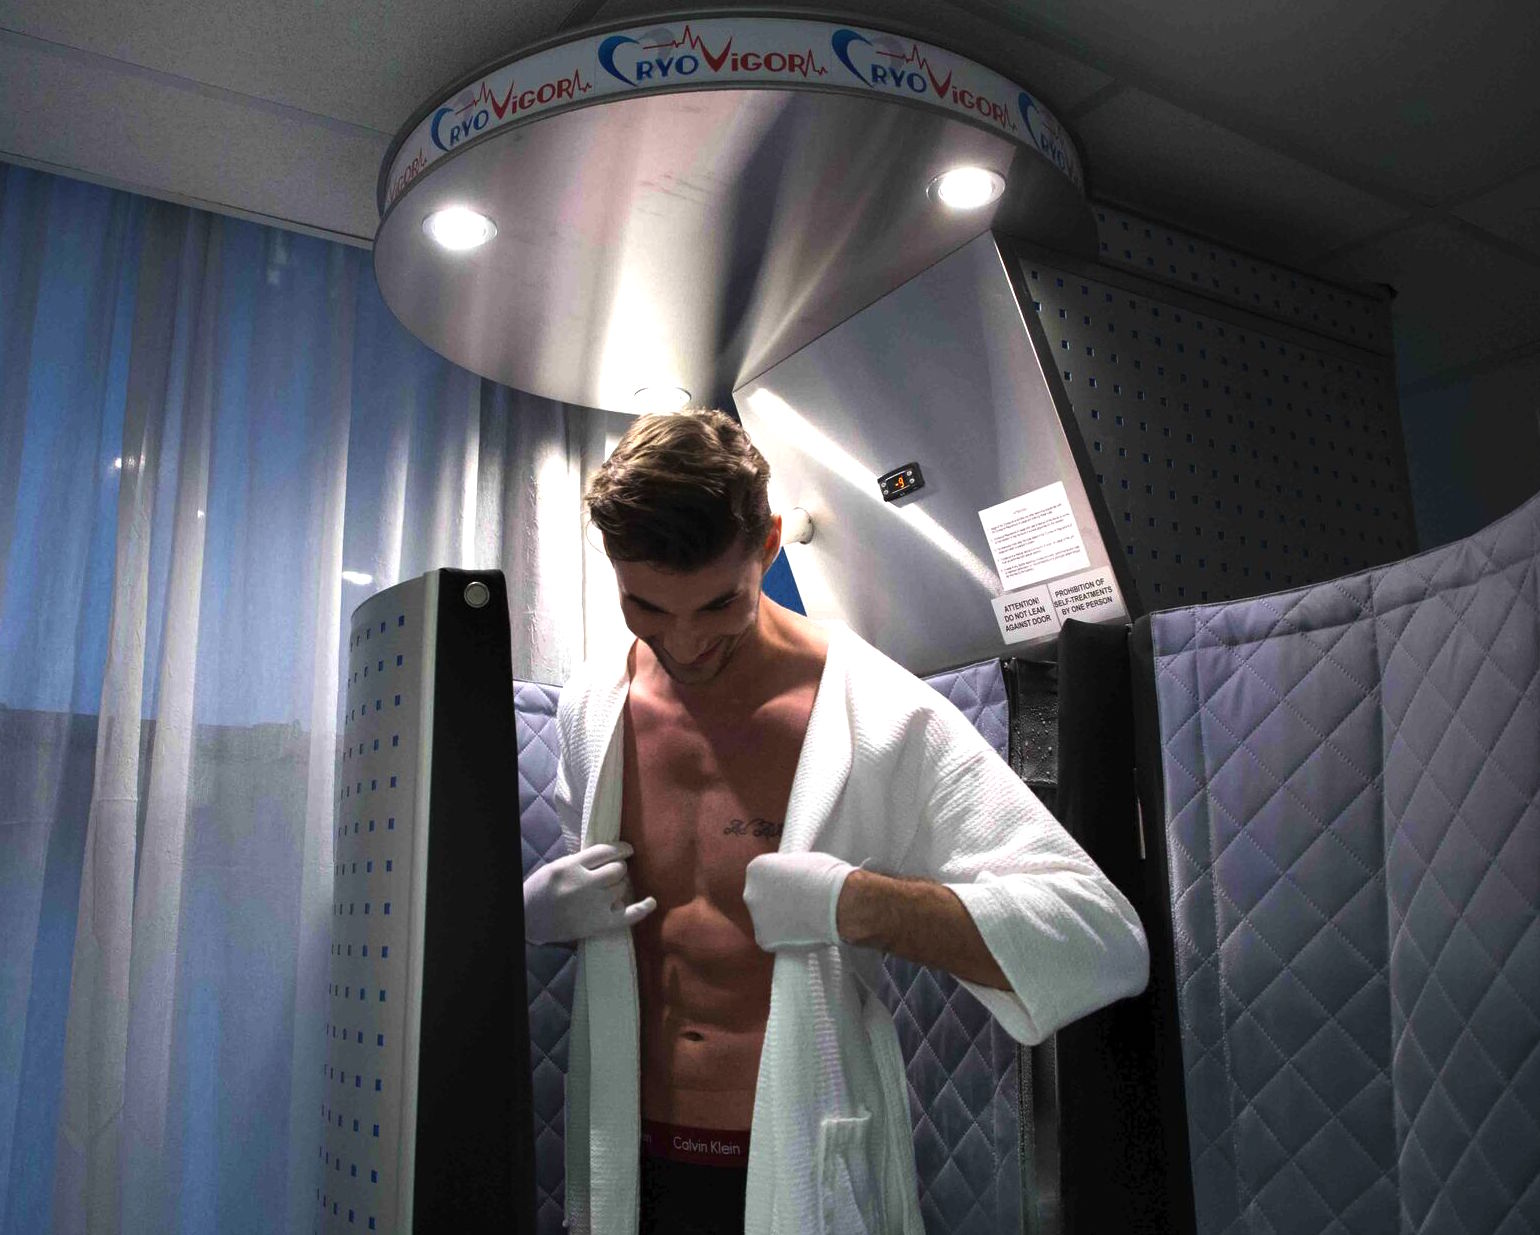 WHOLE BODY CRYO - Just 1-2-3 minutes in a cold, dry air sauna will flush inflammation, increase oxygen and enzymes in the blood while boosting your immune system and stimulating collagen production.